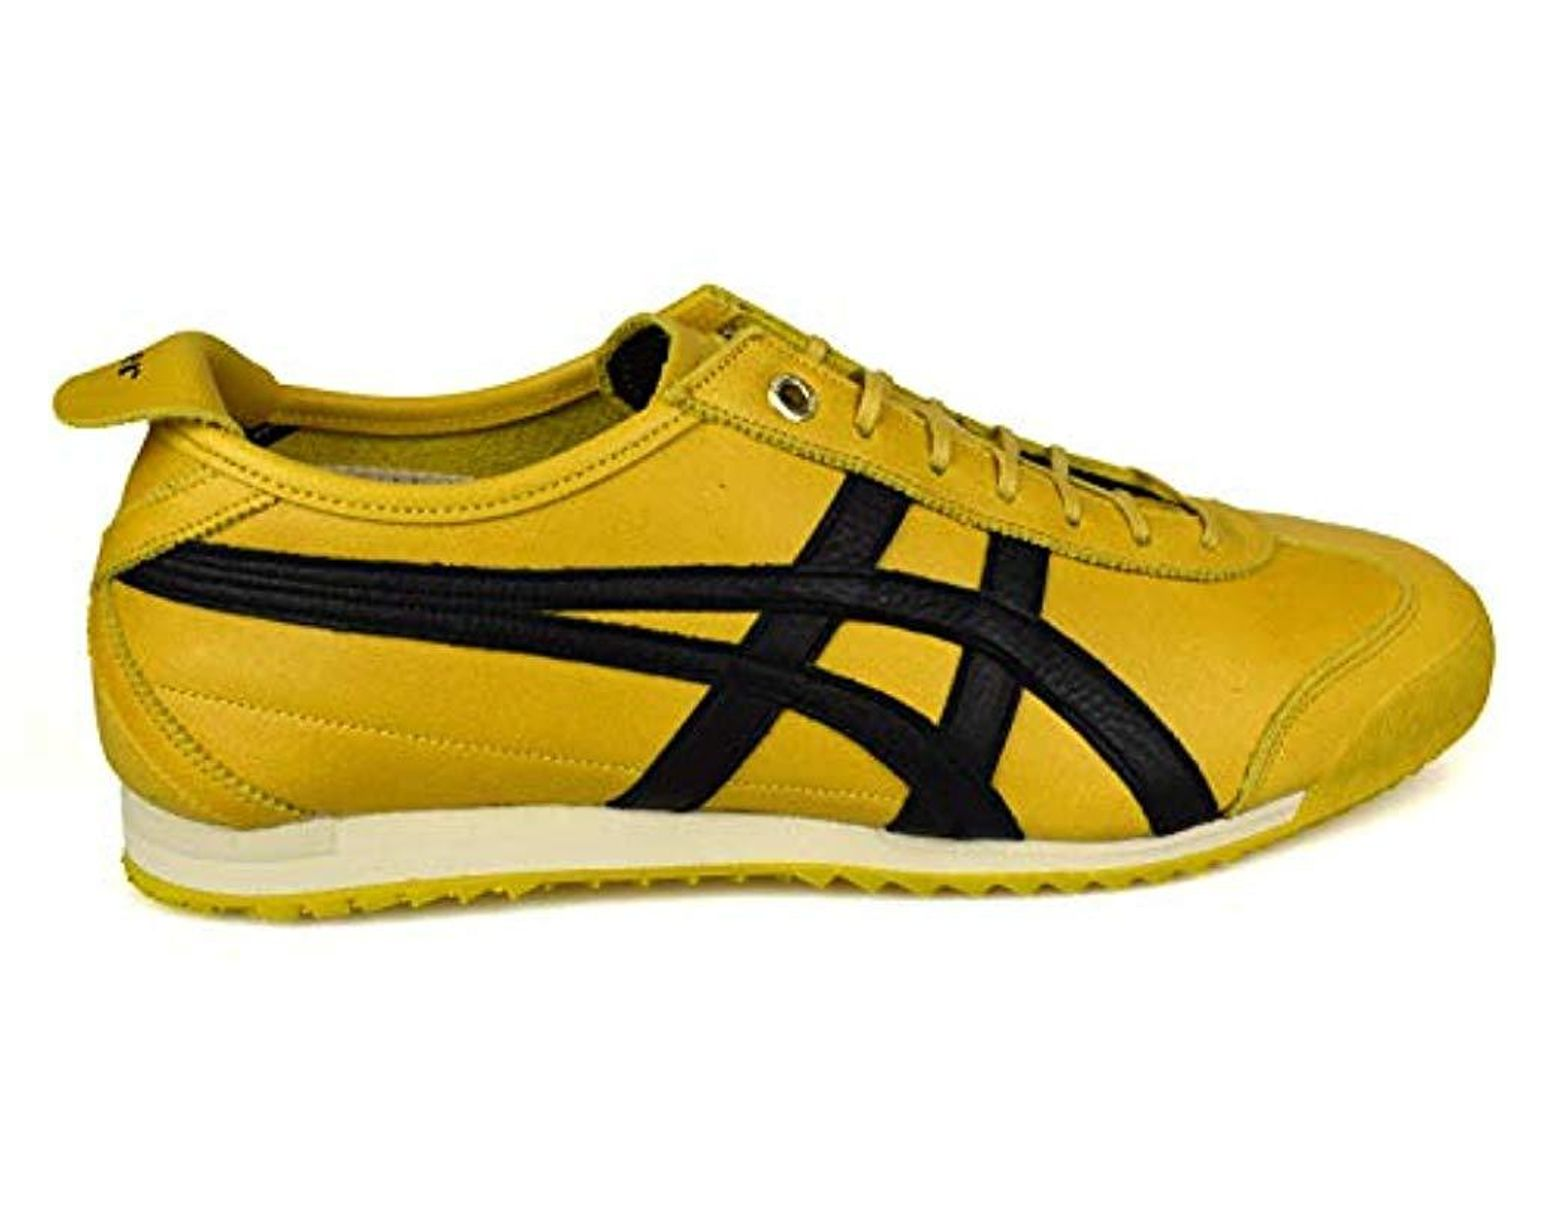 new concept f3c5b b40b3 Asics Onitsuka Tiger Mexico 66 Sd Super Deluxe Yellow Unisex ...